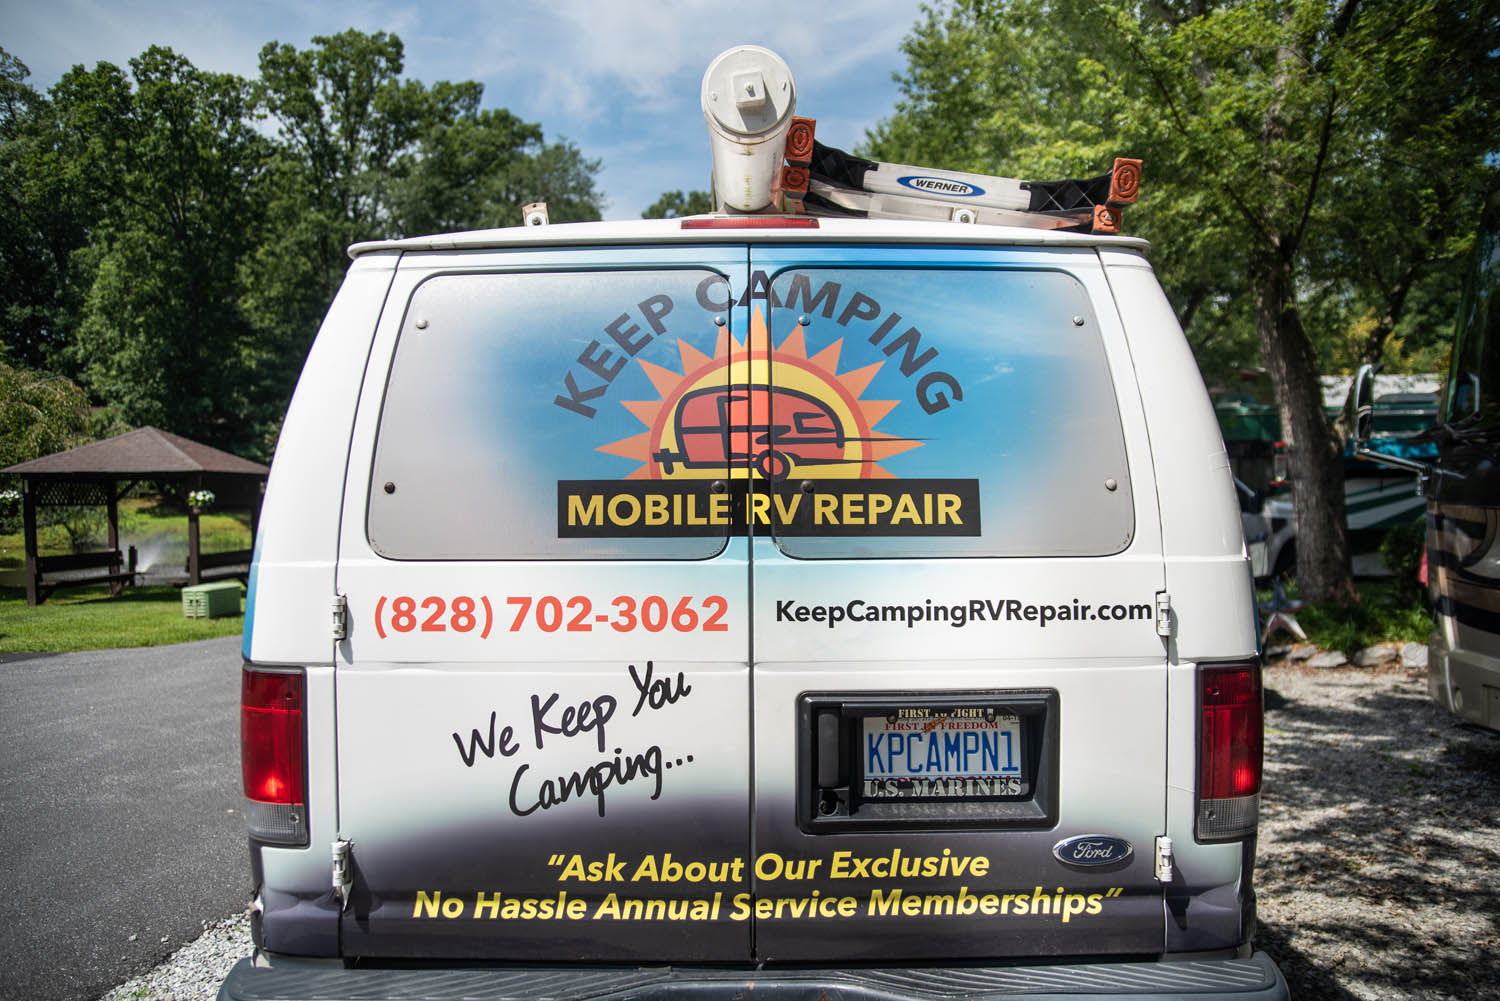 Mobile RV Repair Van